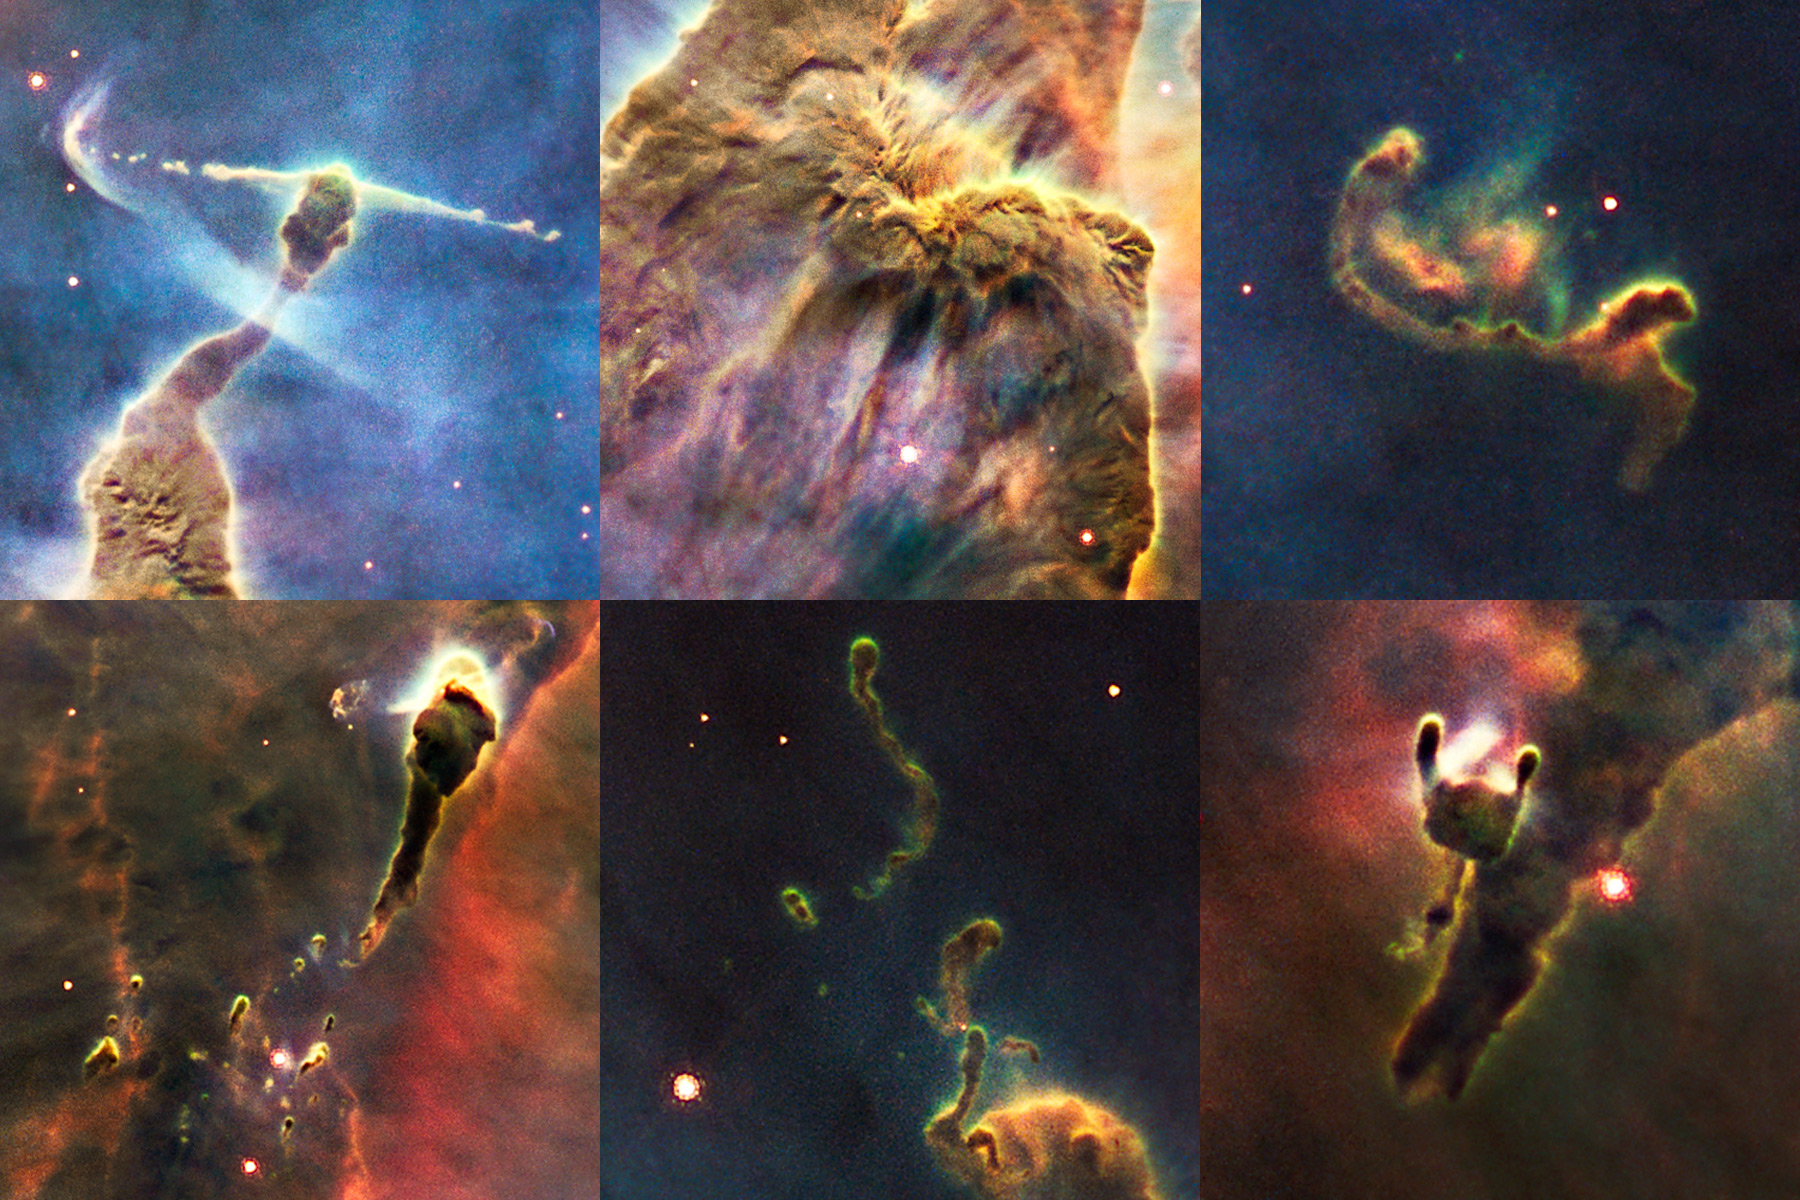 This is a series of close-up views of the complex gas structures in a small portion of the Carina Nebula. The nebula is a cold cloud of predominantly hydrogen gas. It is laced with dust, which makes the cloud opaque. The cloud is being eroded by a gusher of ultraviolet light from young stars in the region. They sculpt a variety of fantasy shapes, many forming tadpole-like structures. In some frames, smaller pieces of nebulosity can be seen freely drifting, such as the structure, four trillion kilometres long, at upper right. The most striking feature is a horizontal jet 5.5 trillion kilometres long in the upper left frame. It is being blasted into space by a young star hidden in the tip of the pillar-like structure. A bowshock has formed near the tip of the jet. Credit: NASA, ESA, M. Livio and the Hubble 20th Anniversary Team (STScI)